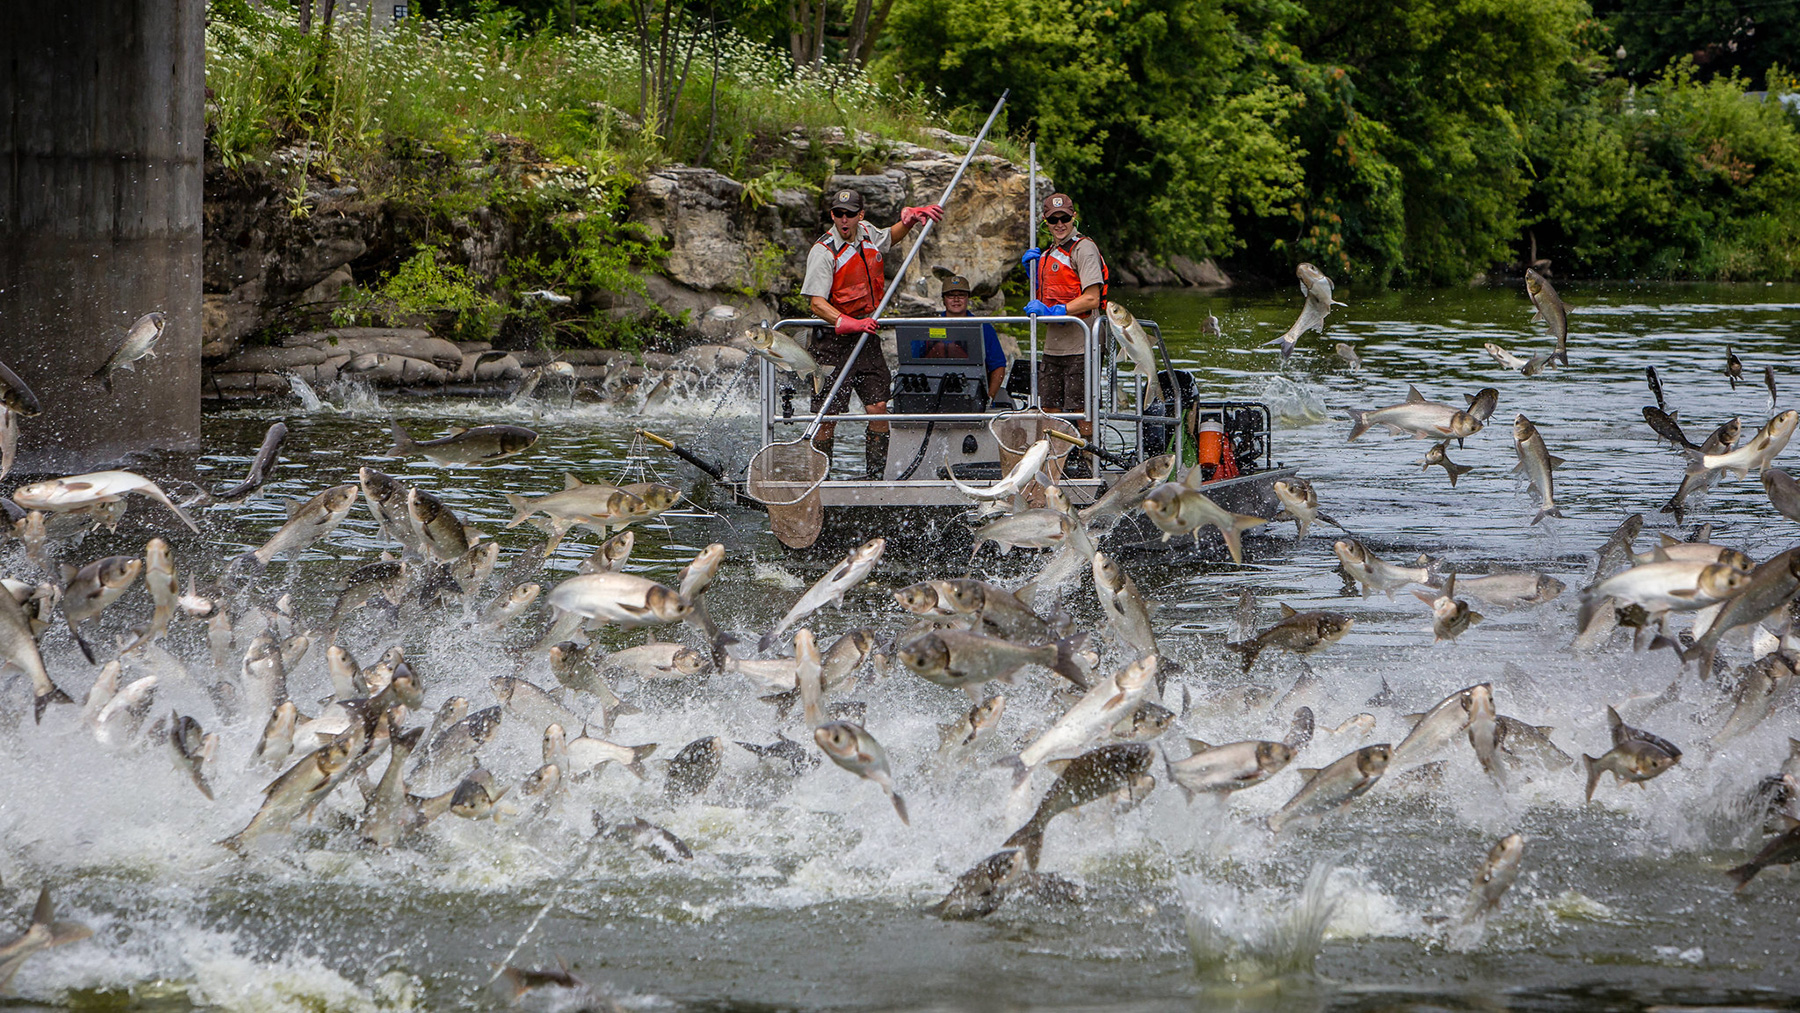 Silver carp leap from the water. Photo by Ryan Hagerty/USFWS